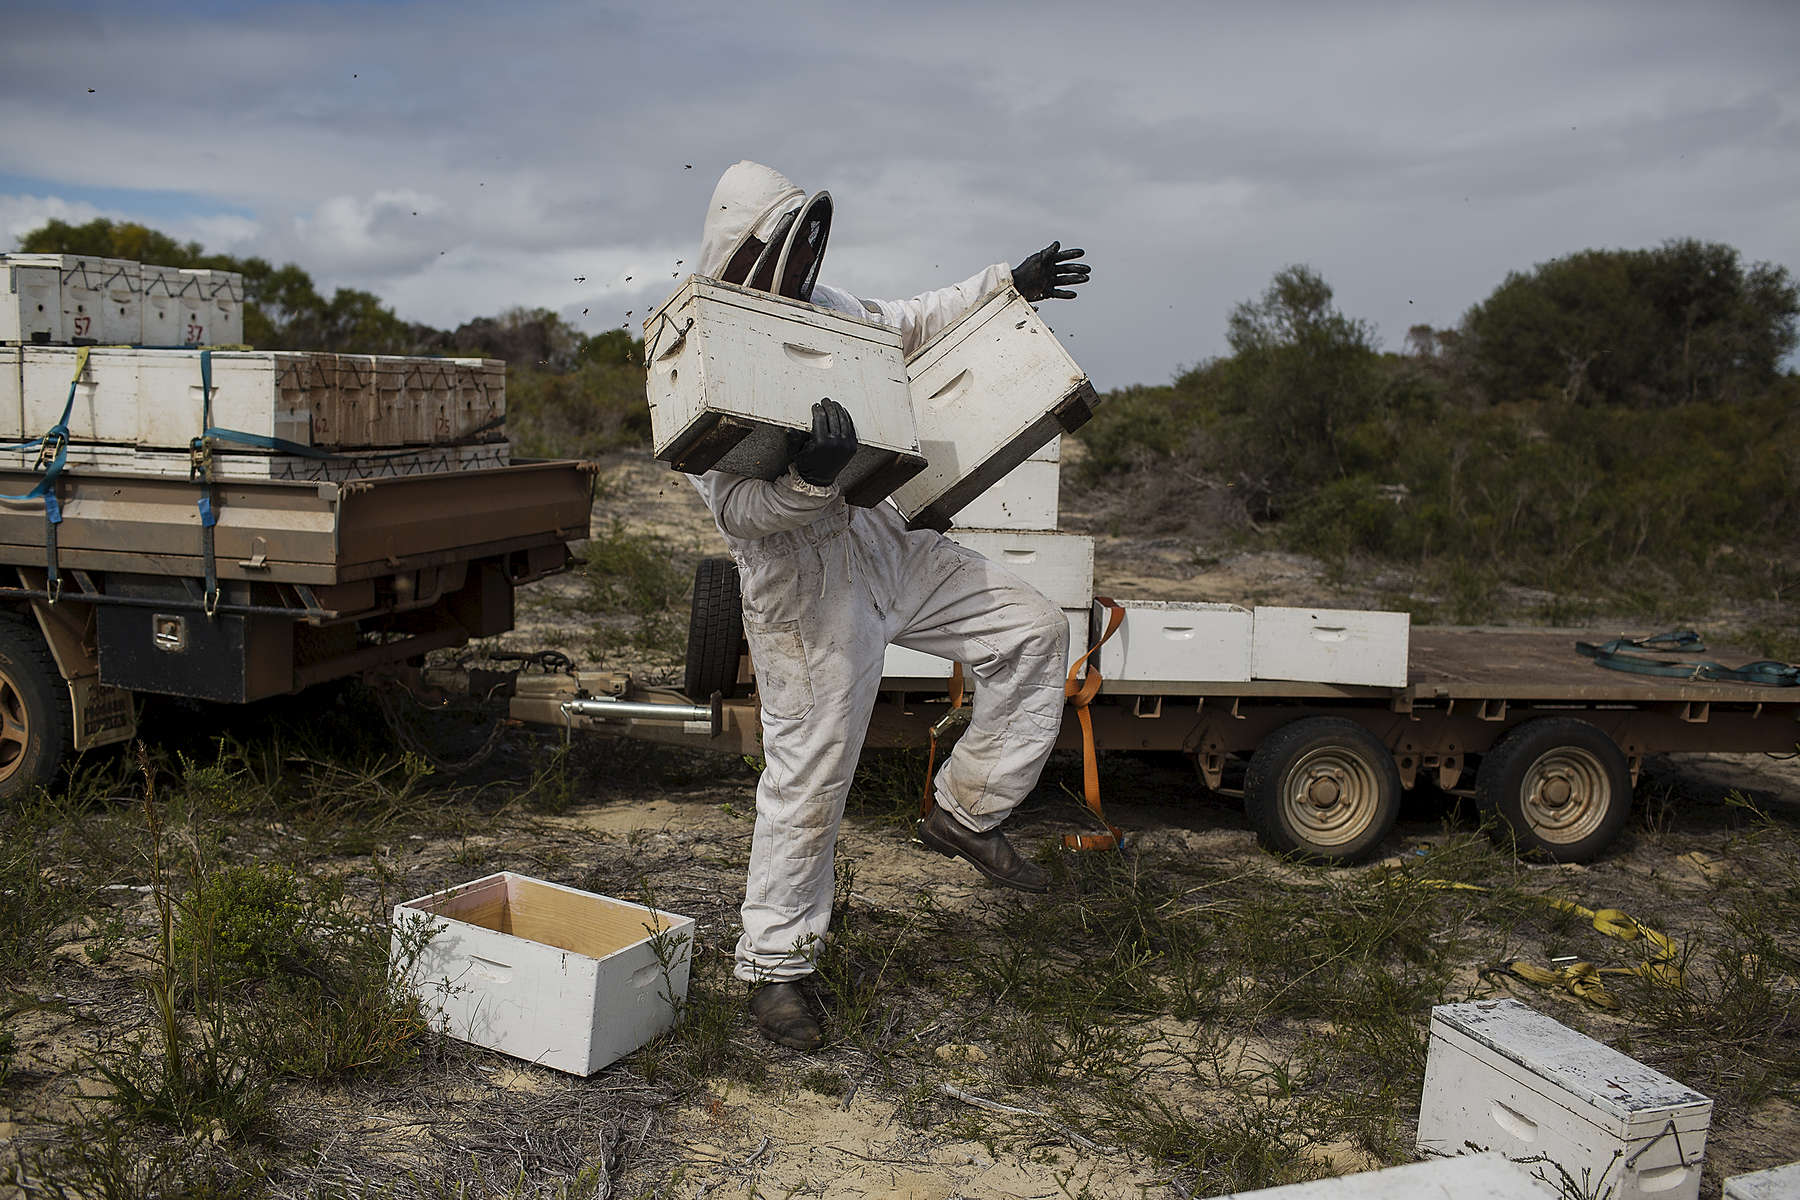 Brendan Fewster carries new hives to be added to the bee colony, a common practice at the end of the winter in preparation for spring. Brad Gresele and business partner Brendan Fewster keep a bee colony inside the Southern Beekeepers Nature Reserve outside Cervantes a small coastal town in Western Australia. 08/16/2013  Credit : Conor Ashleigh for the International Herald Tribune.